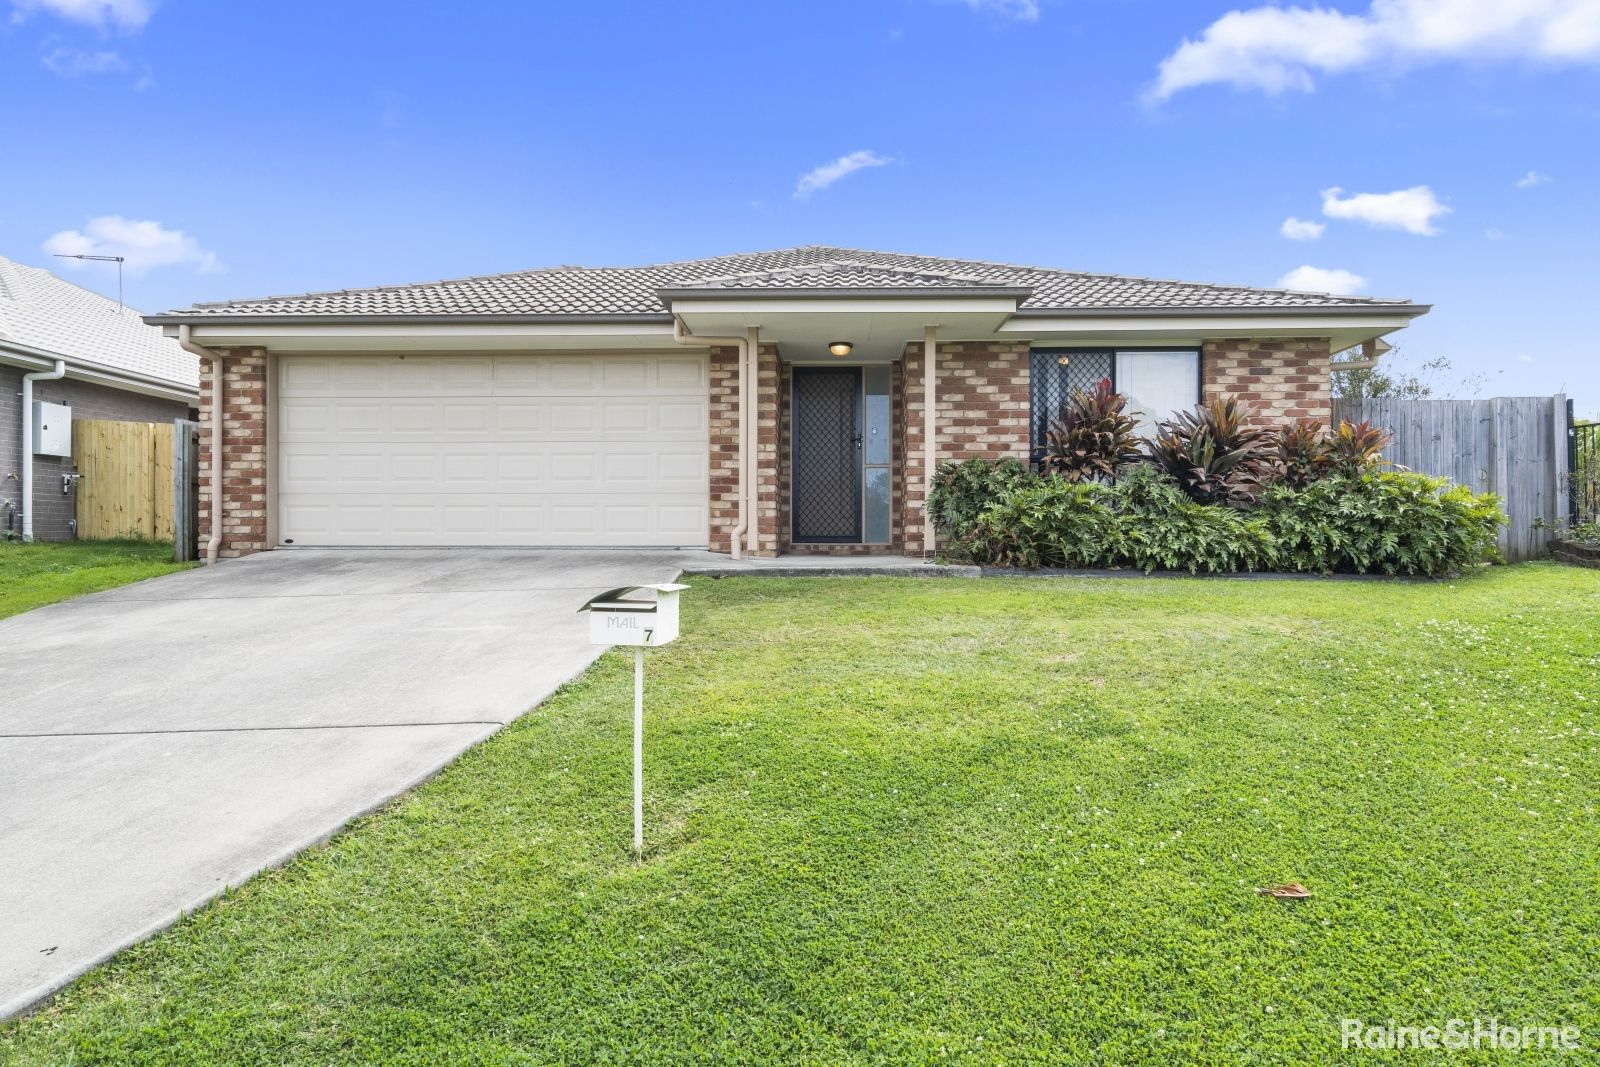 7 VERGE PLACE, Bellmere QLD 4510, Image 0